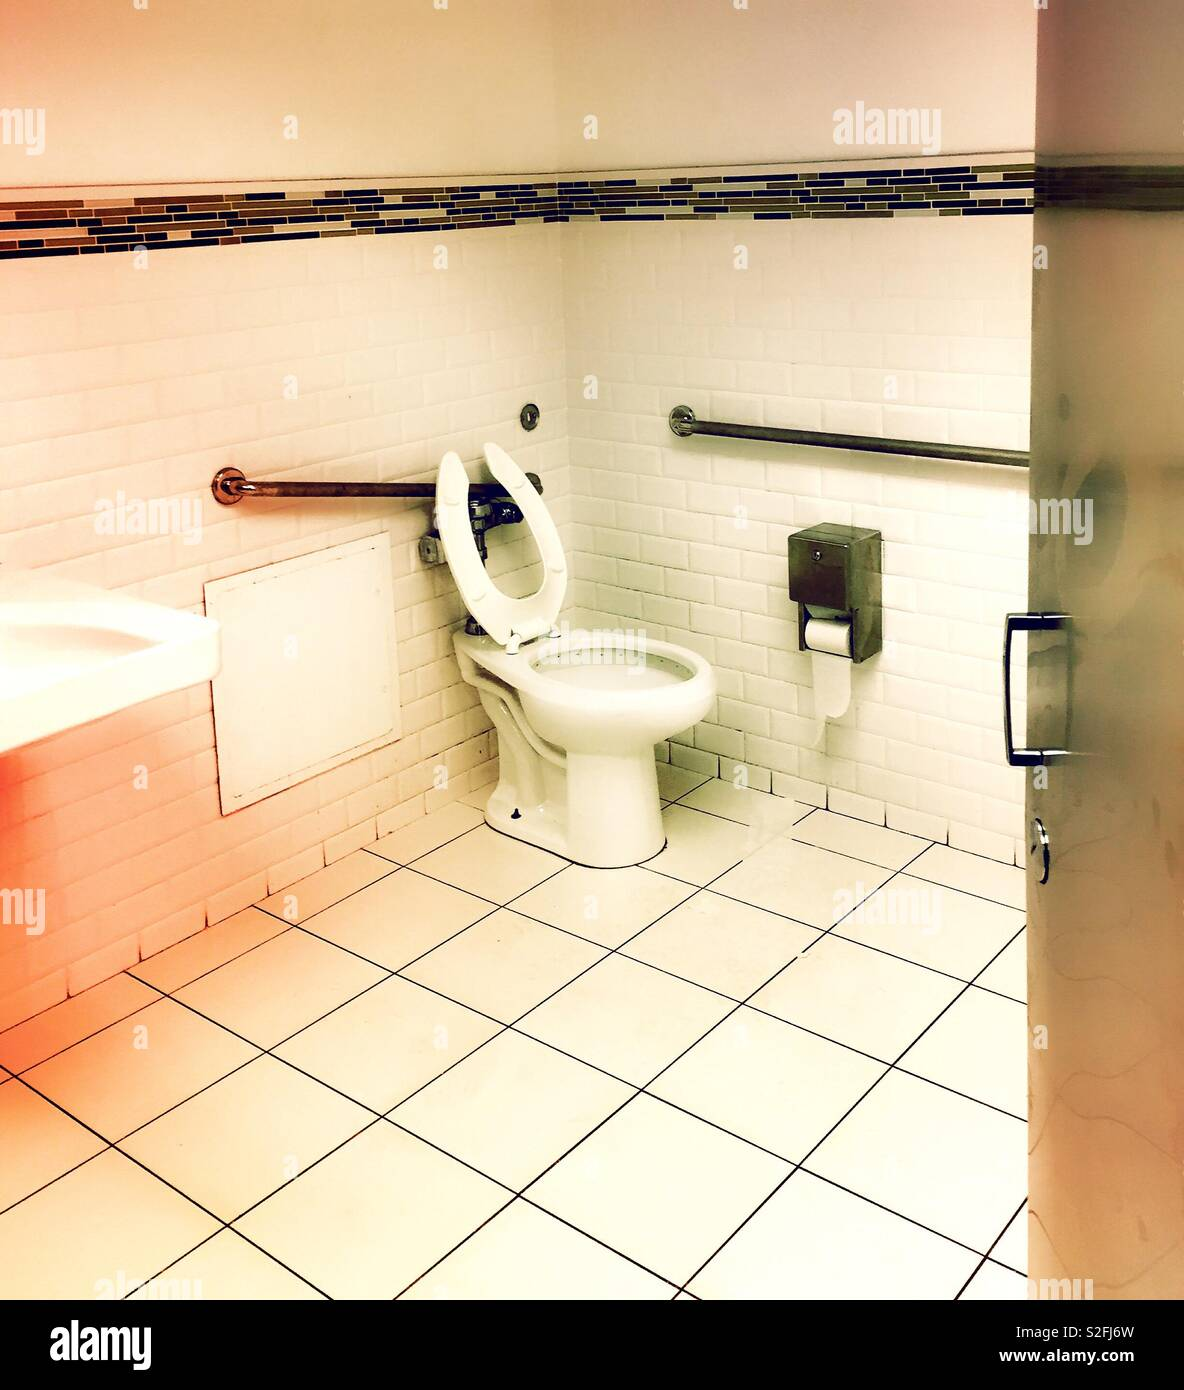 A white public restroom with disability access bars and toilet sizing, USA - Stock Image